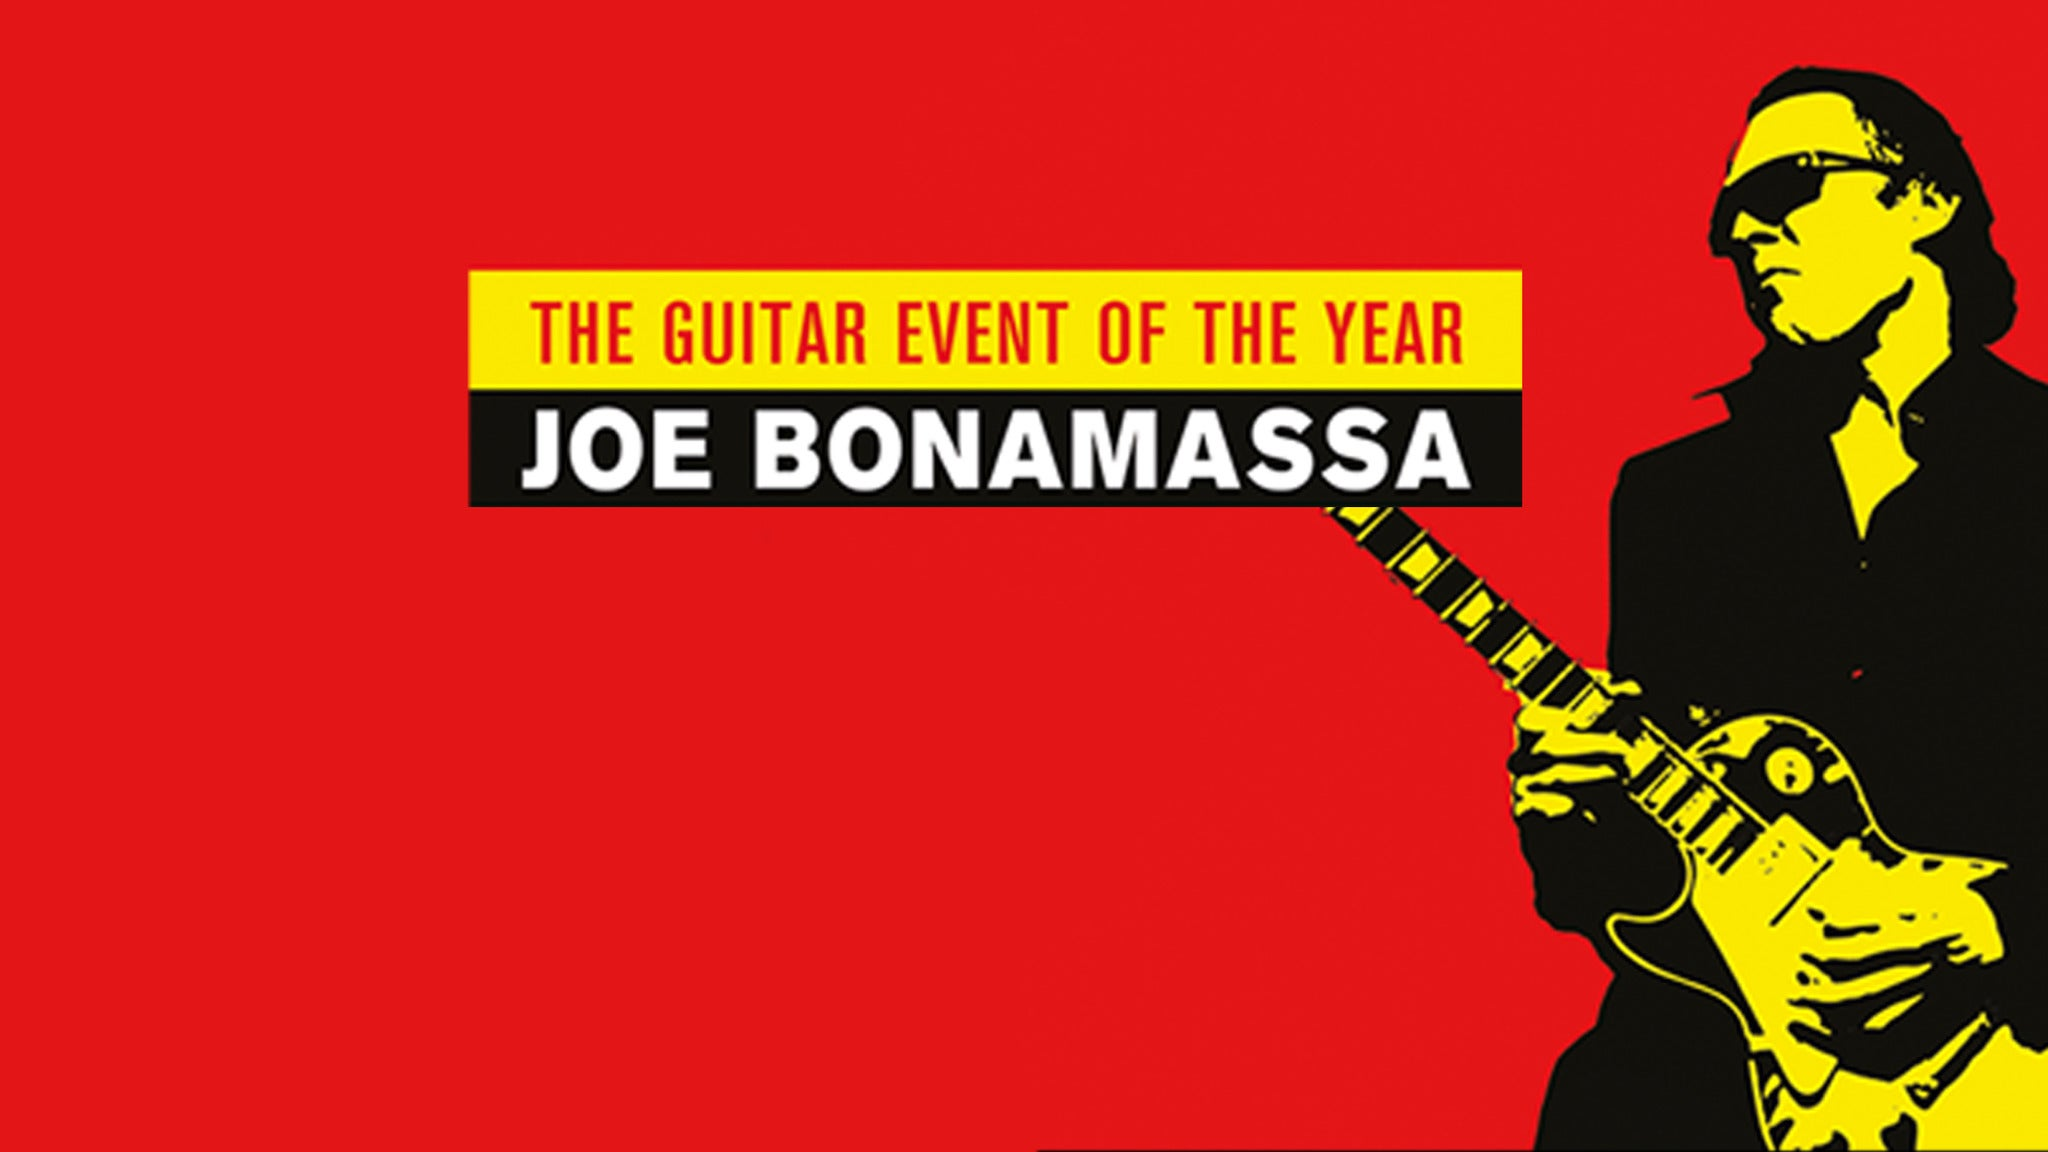 Joe Bonamassa at Bob Hope Theatre